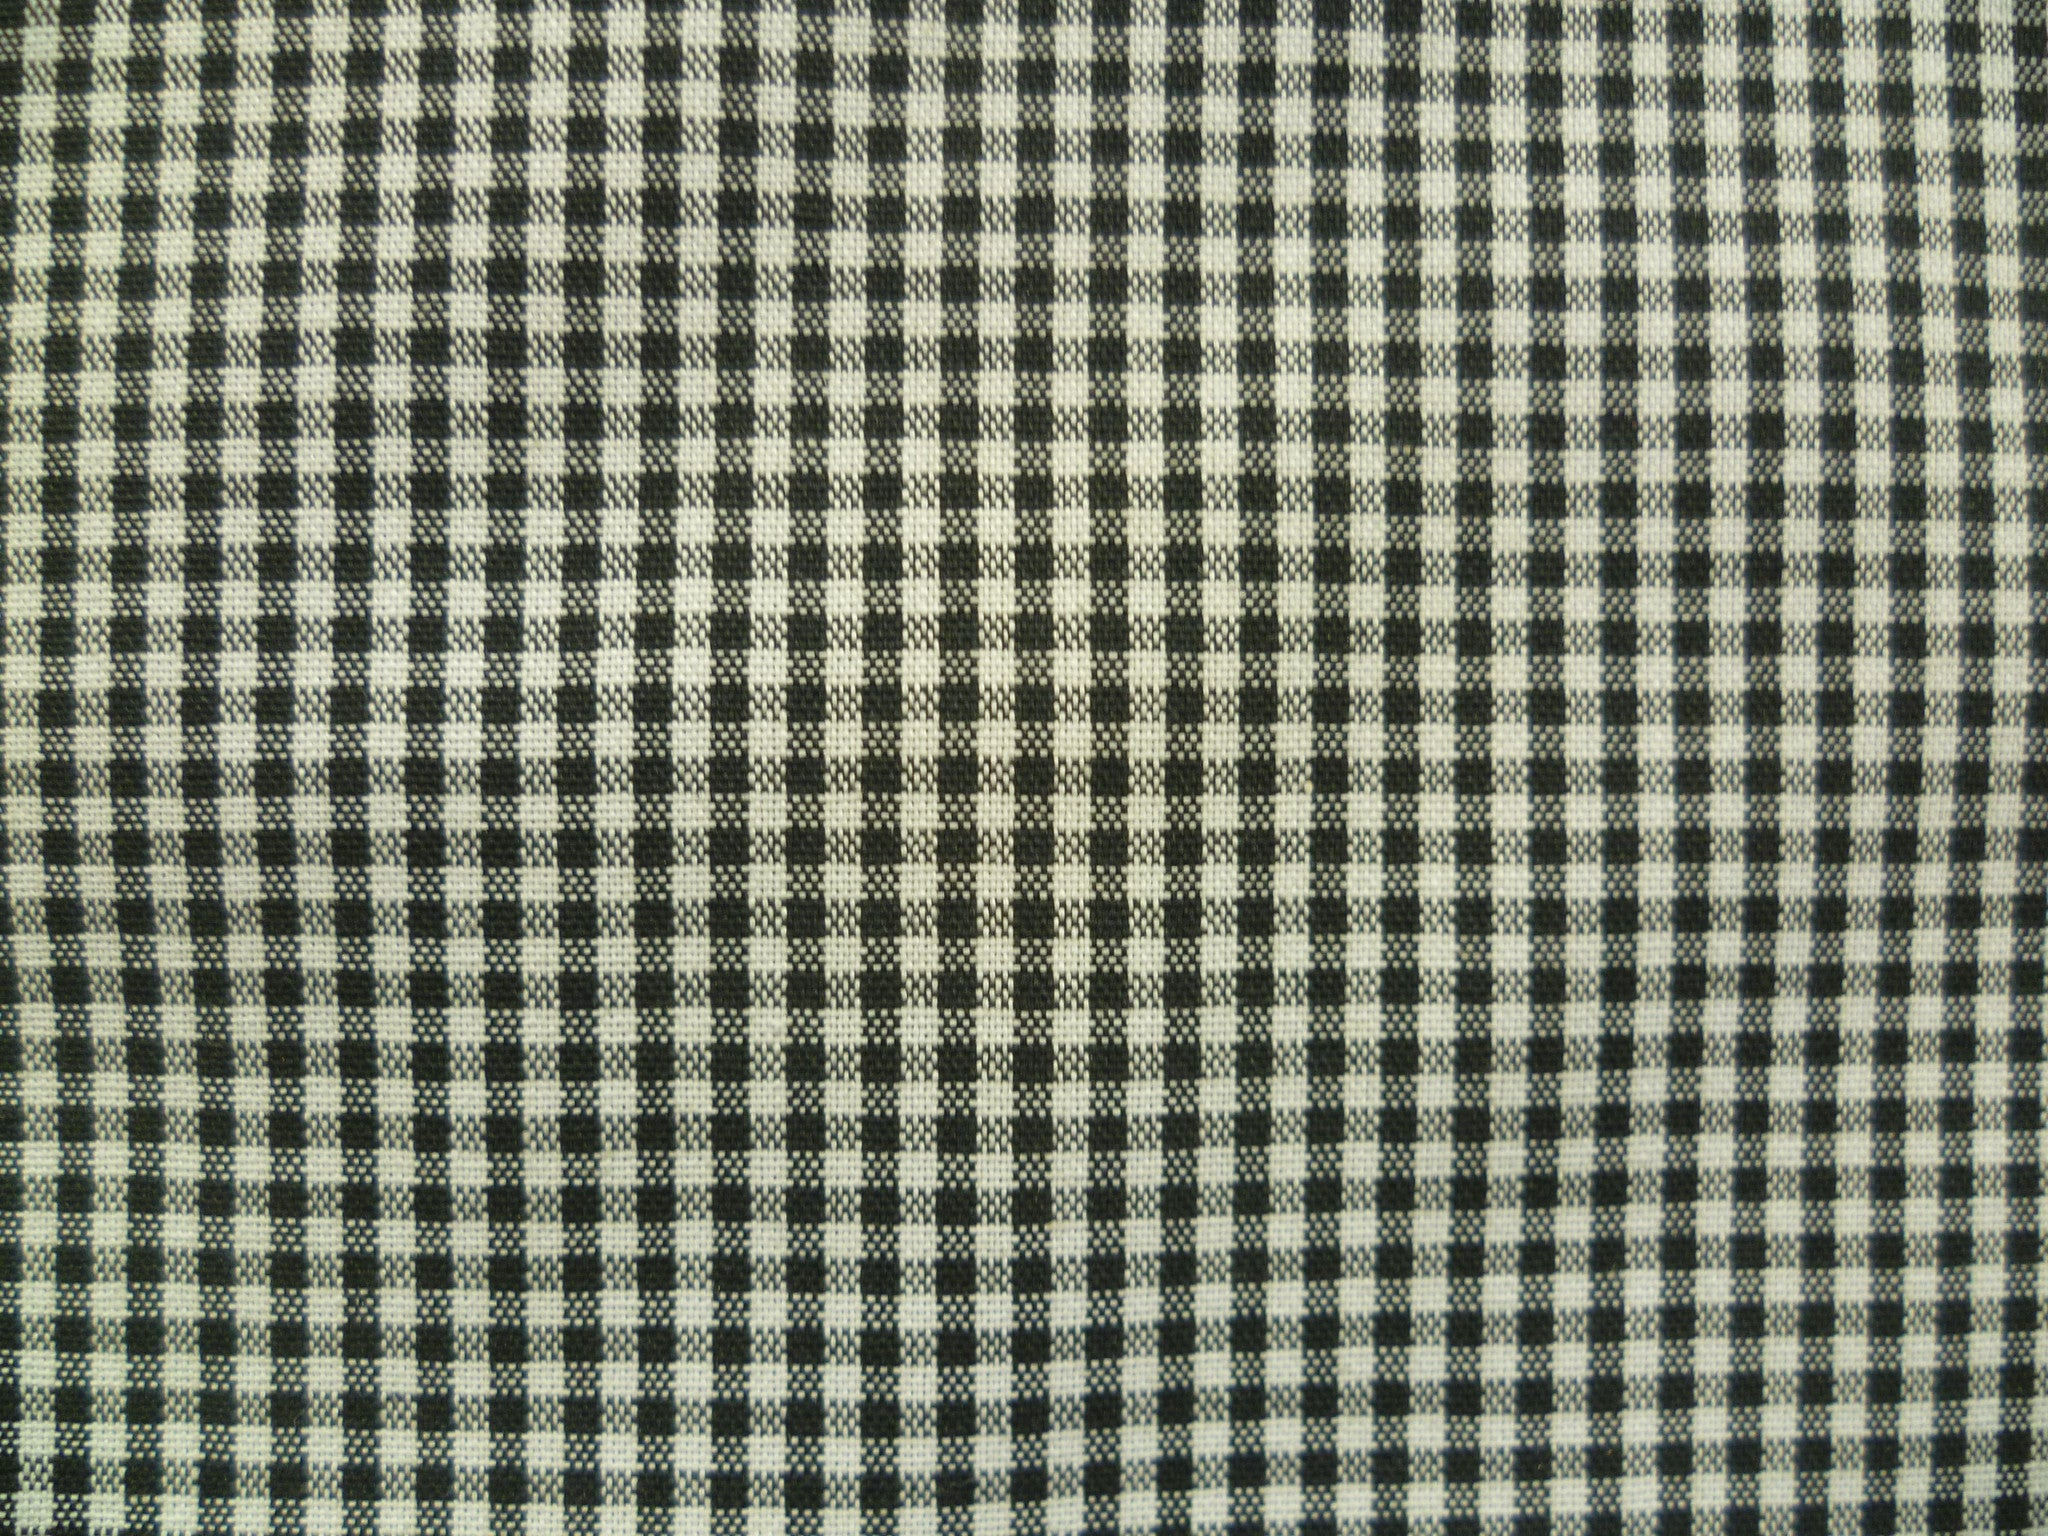 CHEFS FABRIC POLYCOTTON , FOR CHEFS UNIFORMS( SPECIAL PRICE) 10-11 oz